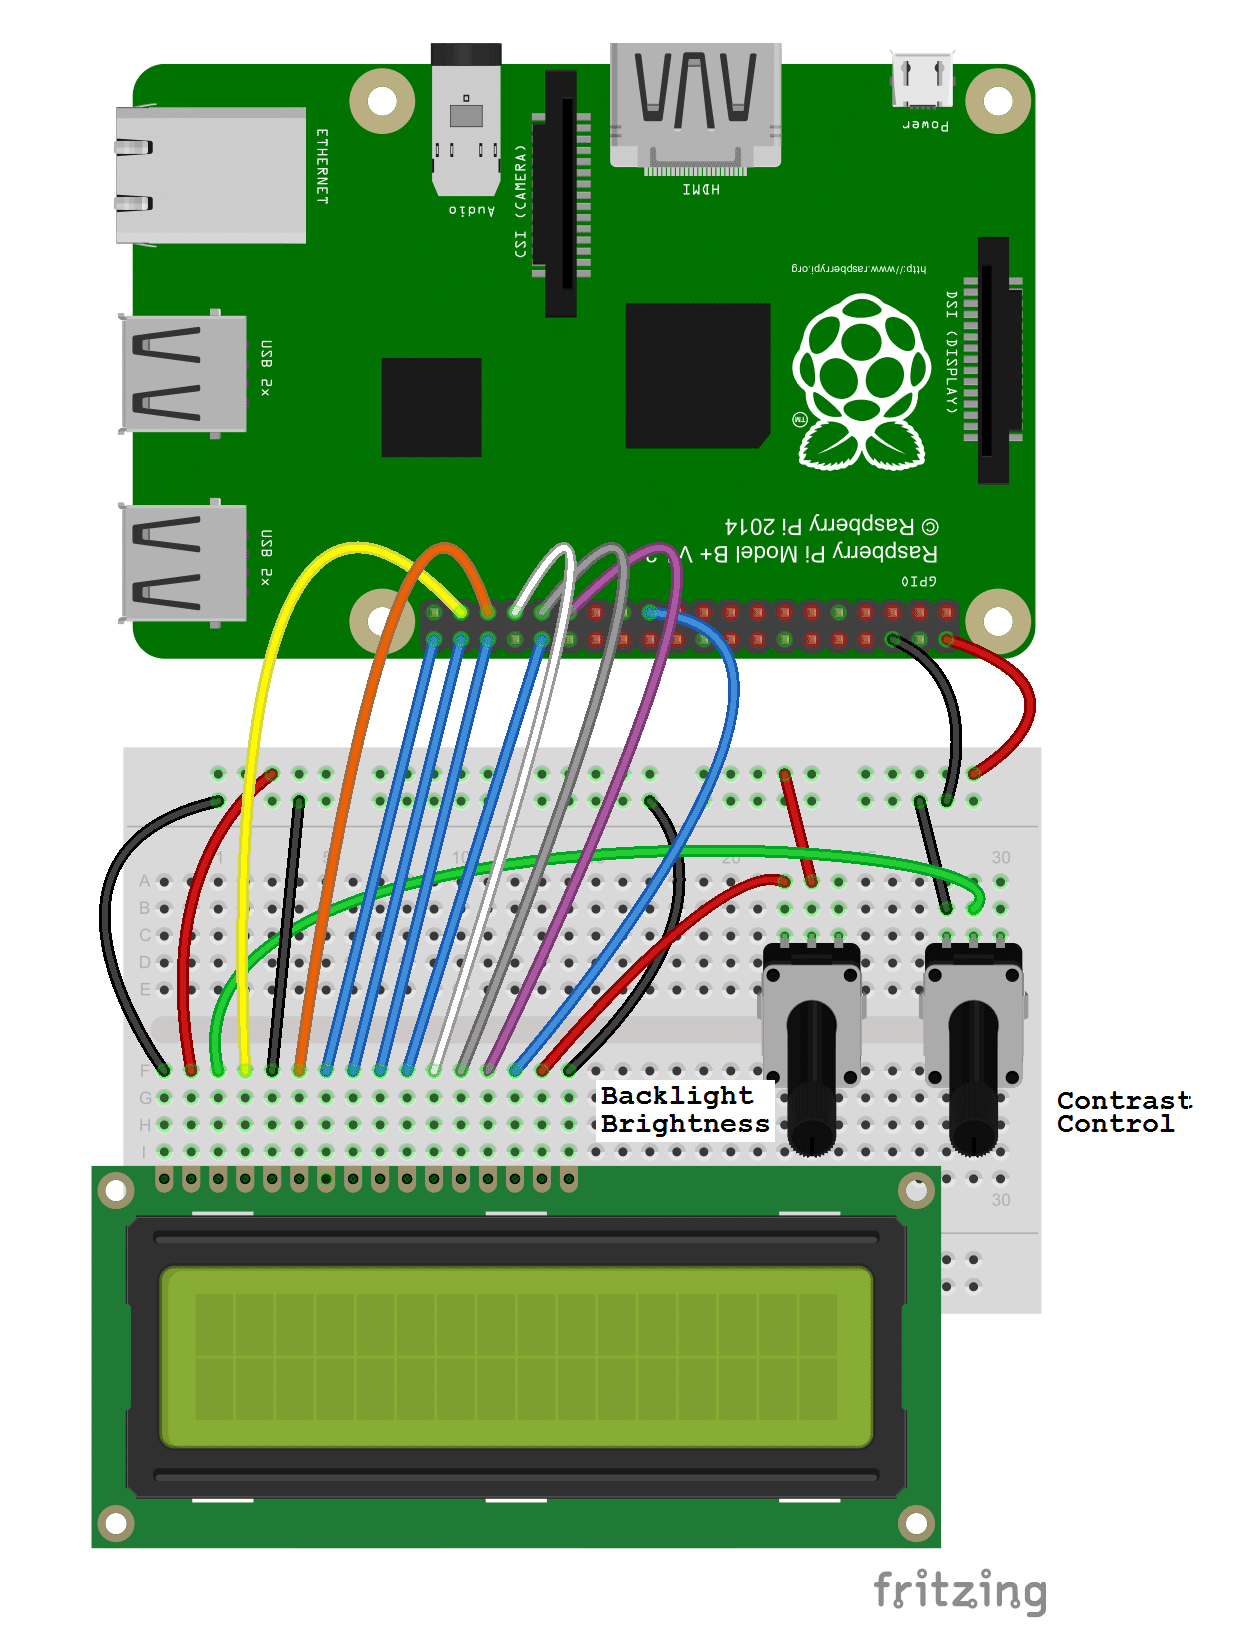 How To Setup An Lcd On The Raspberry Pi And Program It With C Wiringpi Led Blink Connecting In 8 Bit Mode Requires 10 Gpio Pins